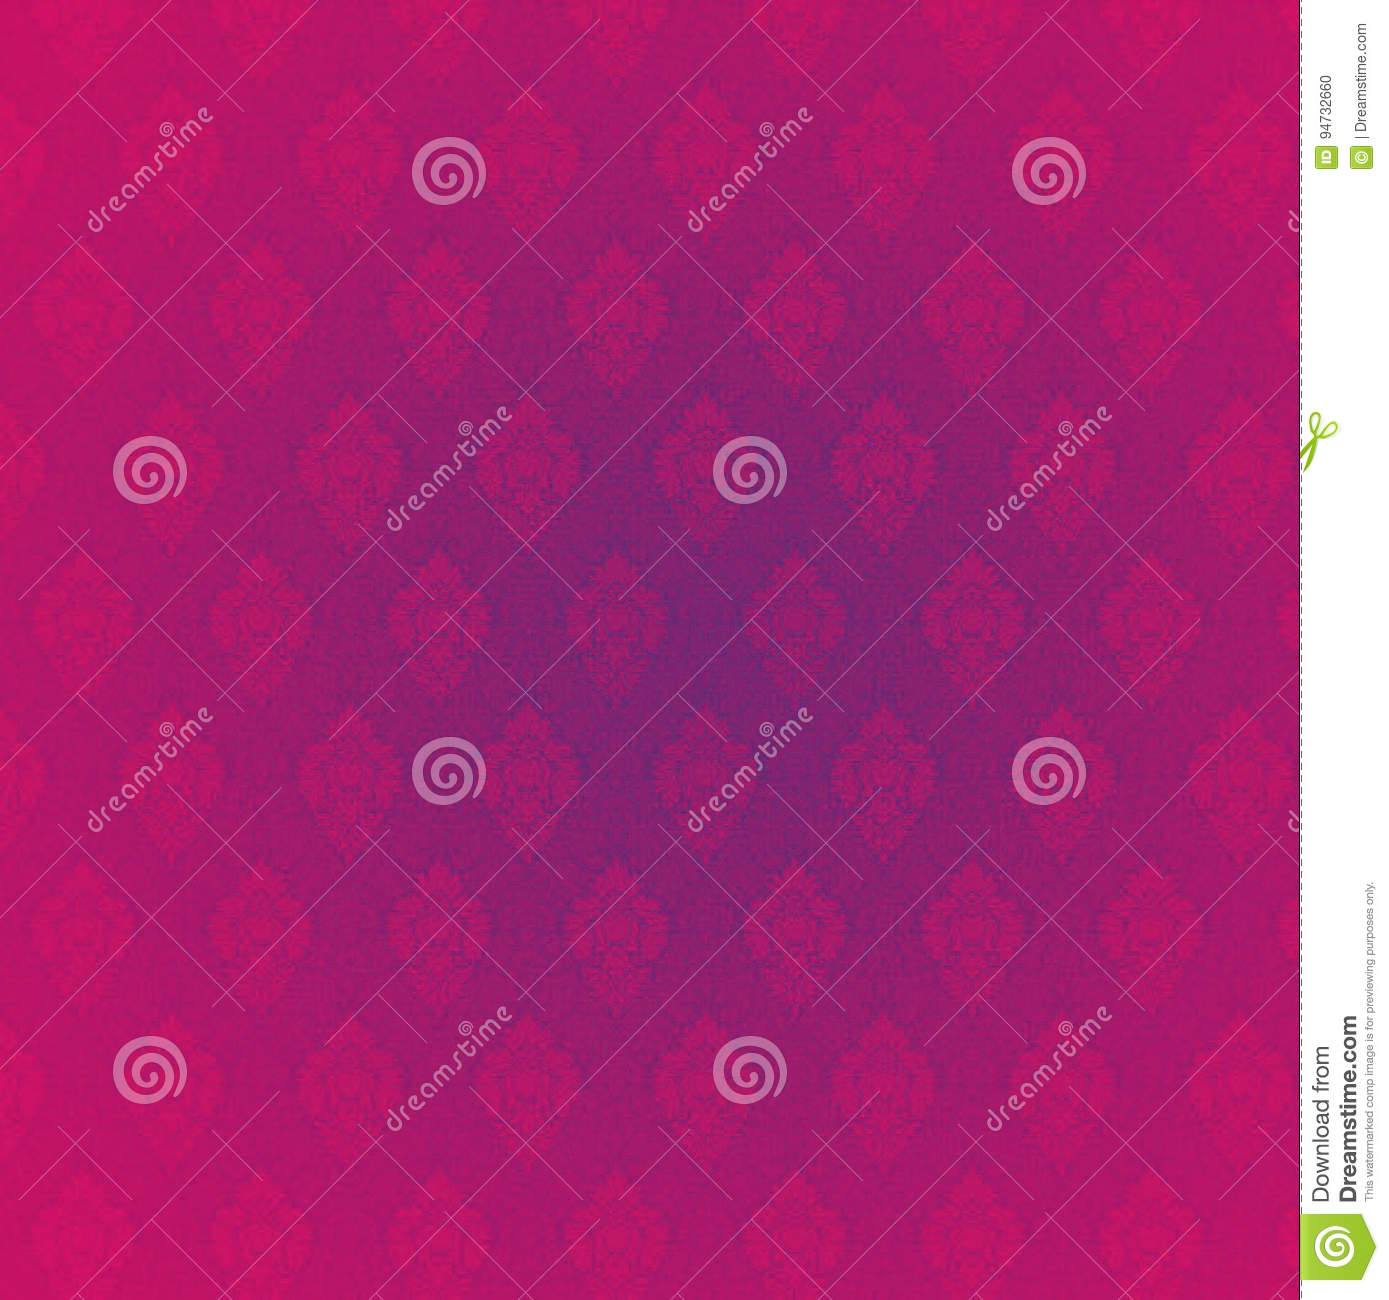 Pink Background Design For Wedding Invitation Card Stock Photo